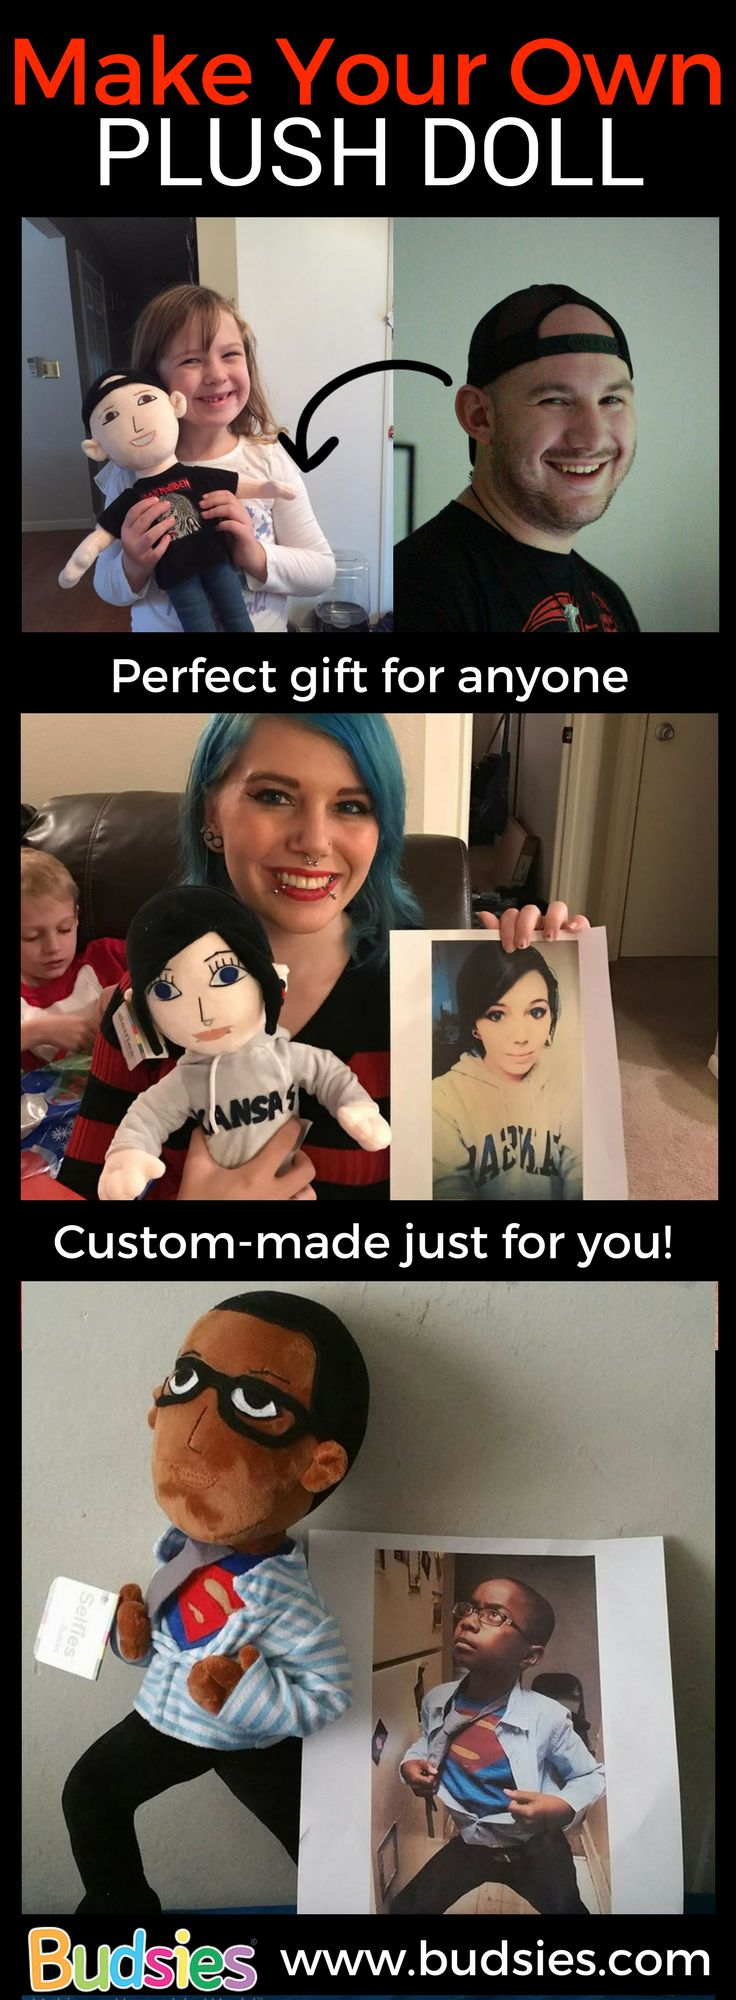 THE COOLEST GIFT EVER! You can submit a photo of yourself or a loved one and Budsies will turn it into a custom plush doll. The dolls are hand-made and are a great gift idea for both kids and adults. Create your own personalized doll at www.budsies.com and surprise your loved ones with a gift they'll never forget! #customgifts